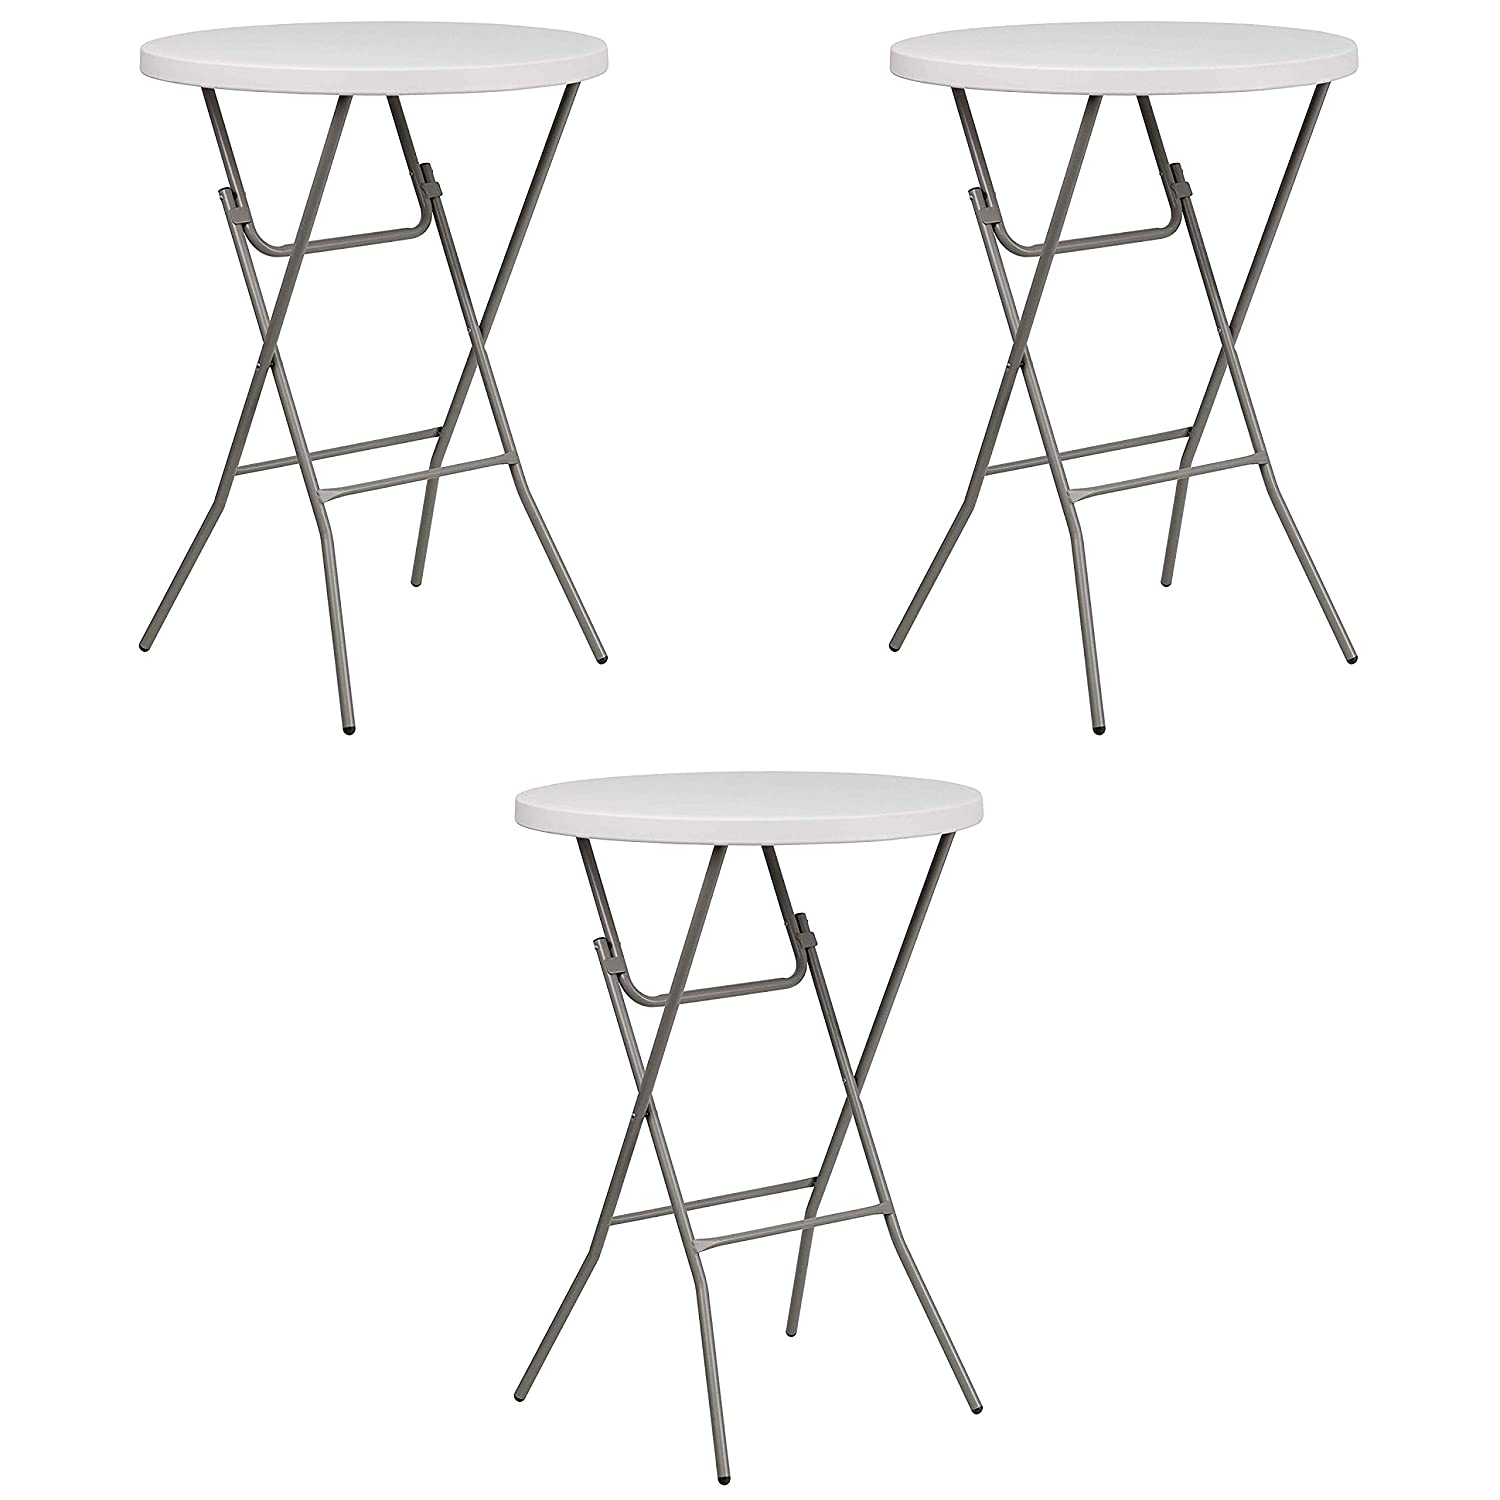 Flash Furniture 3-Foot Round Granite White Plastic Bar Height Folding Table Pack of 2